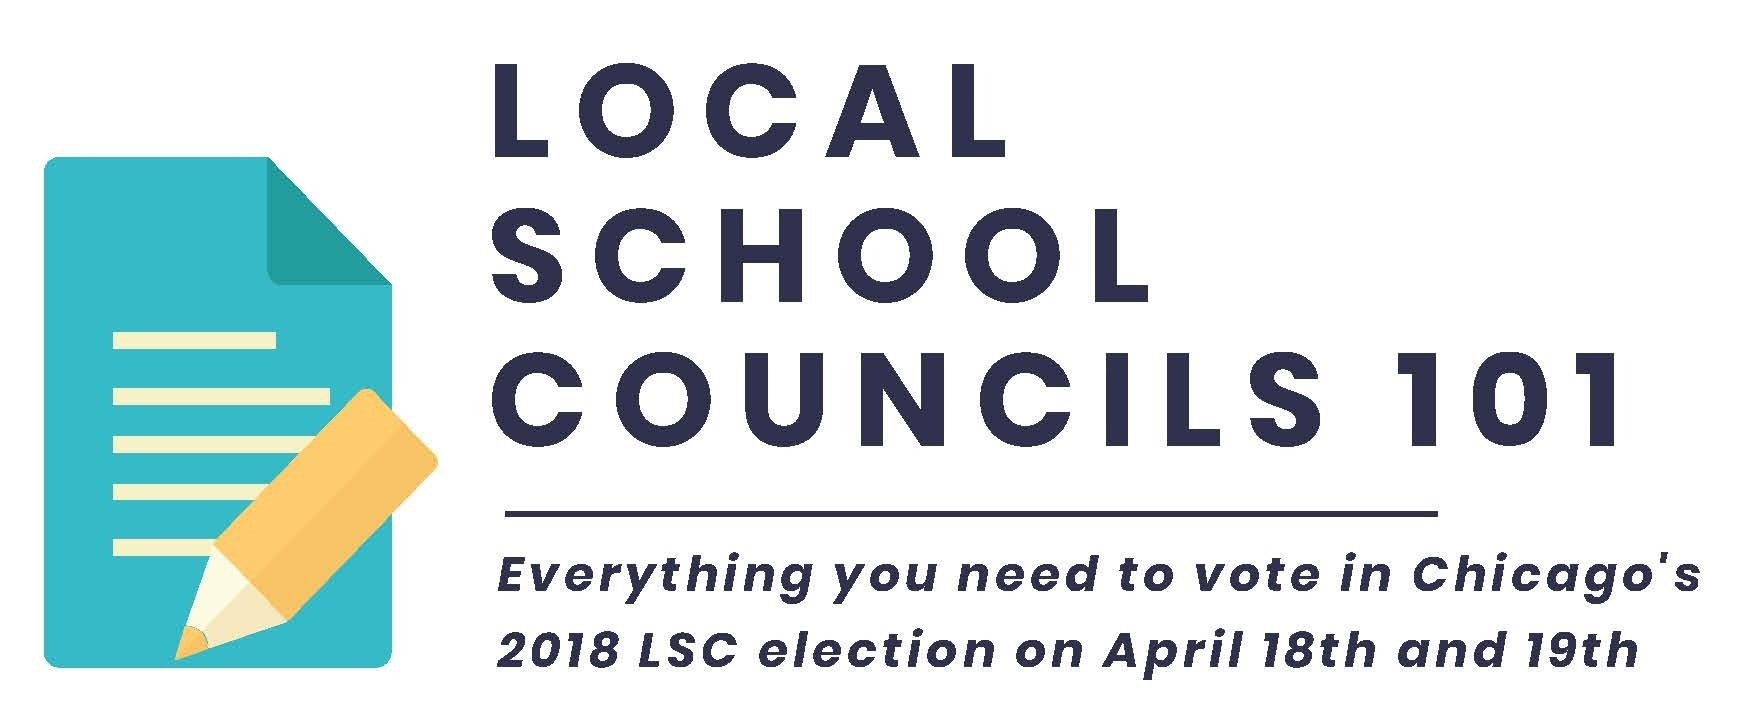 2018 LSC Elections Infographic final.jpg